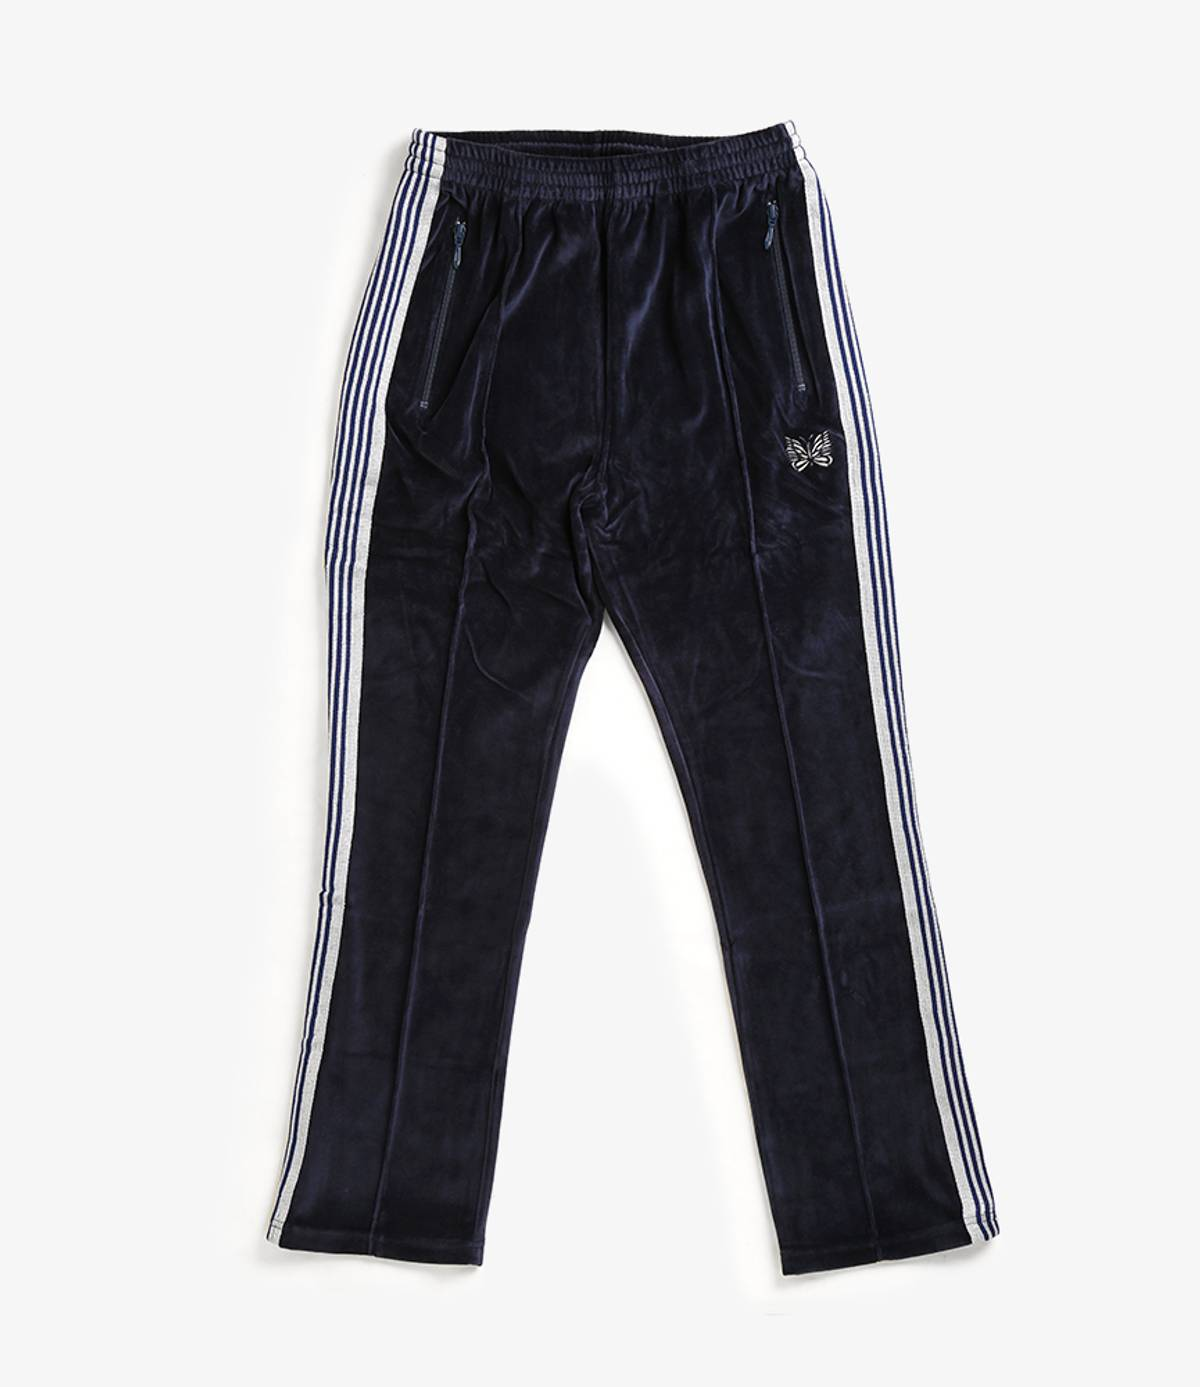 Needles Narrow Track pant c//pe velour grey brand new Japan Nepenthes EJ202 19SS